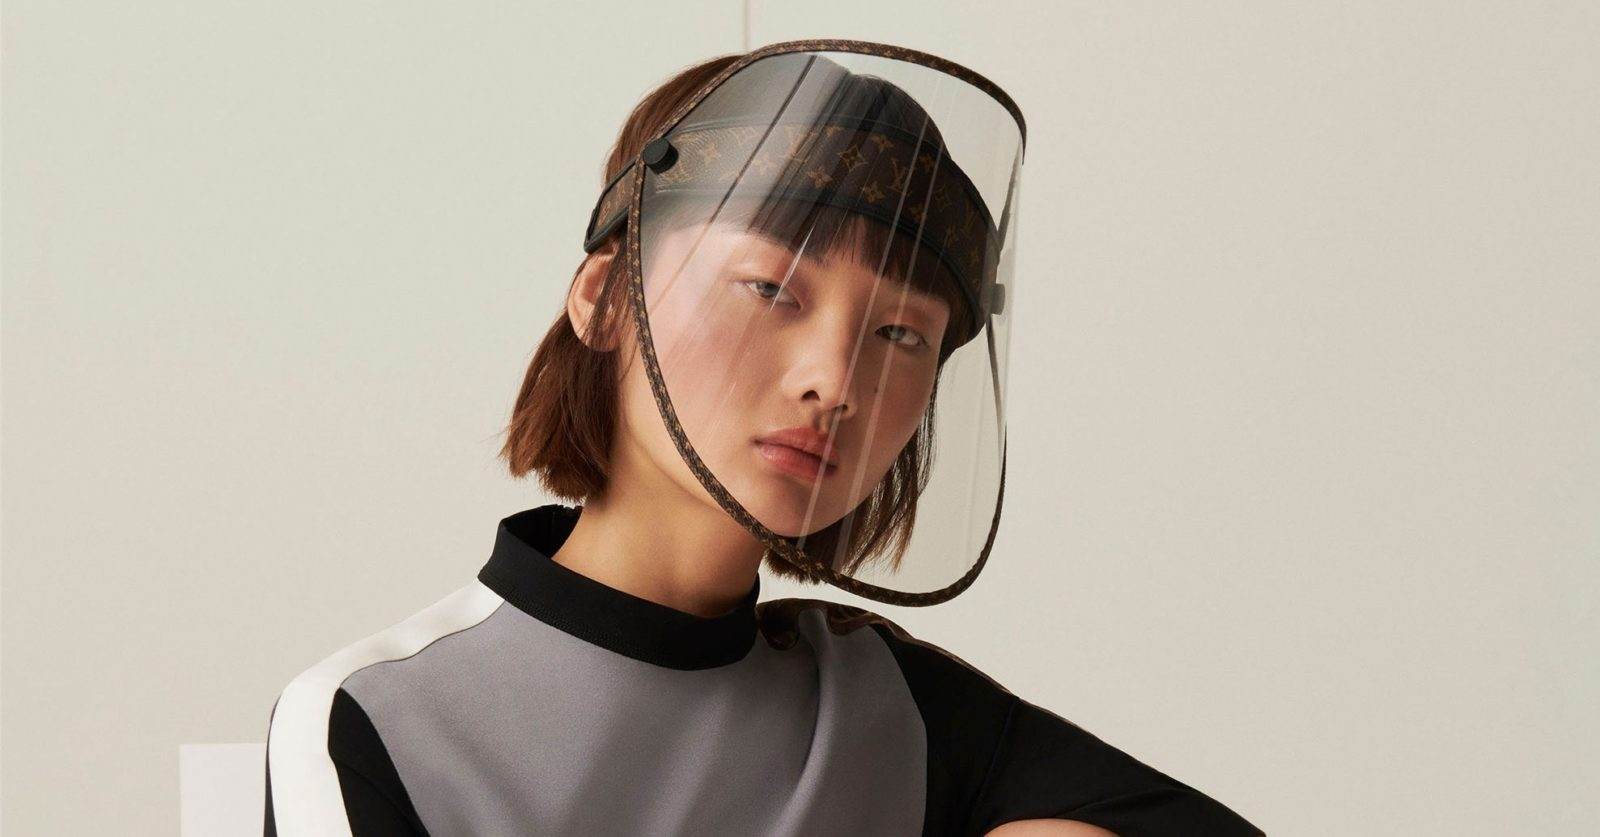 Louis Vuitton is dropping a new luxury accessory — the face shield